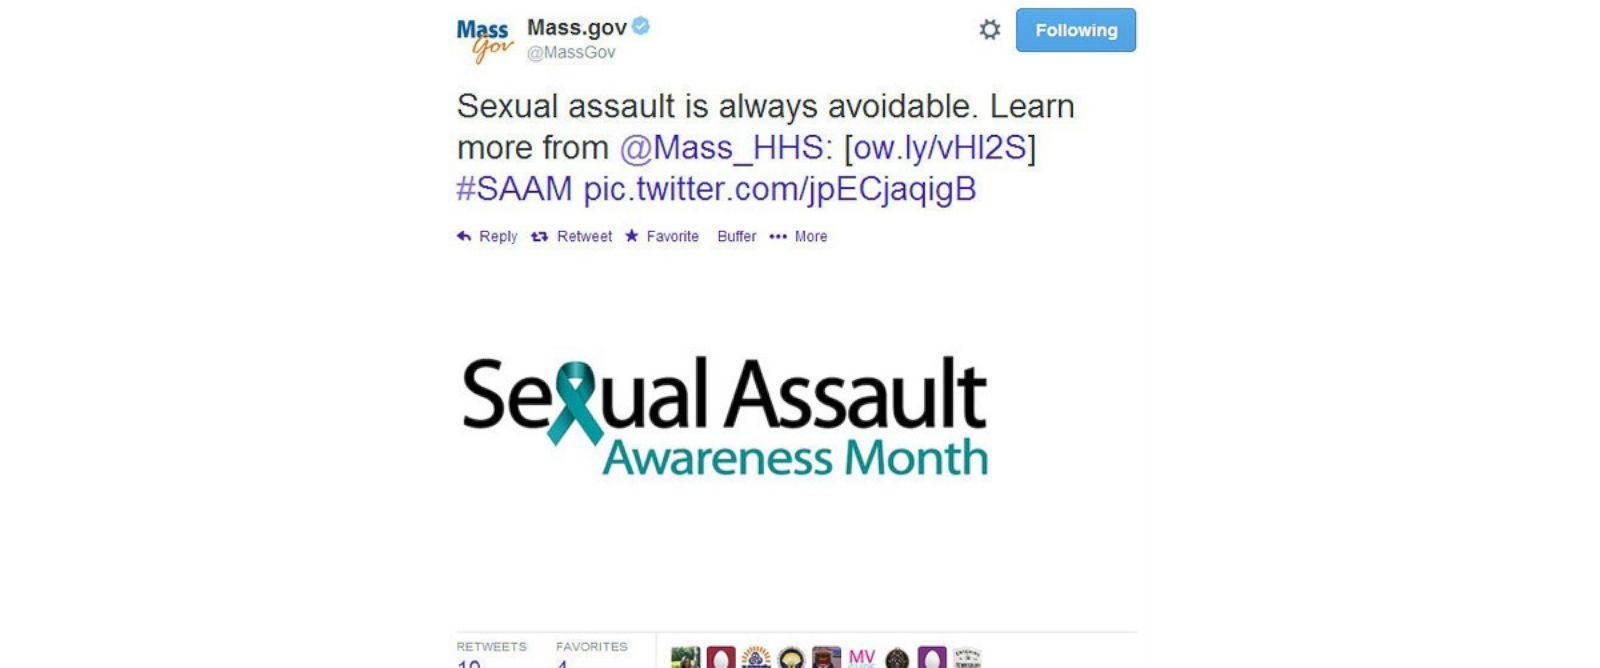 PHOTO: Massachusetts government Twitter account tweeted this message April 30, 2014 and quickly took it down.